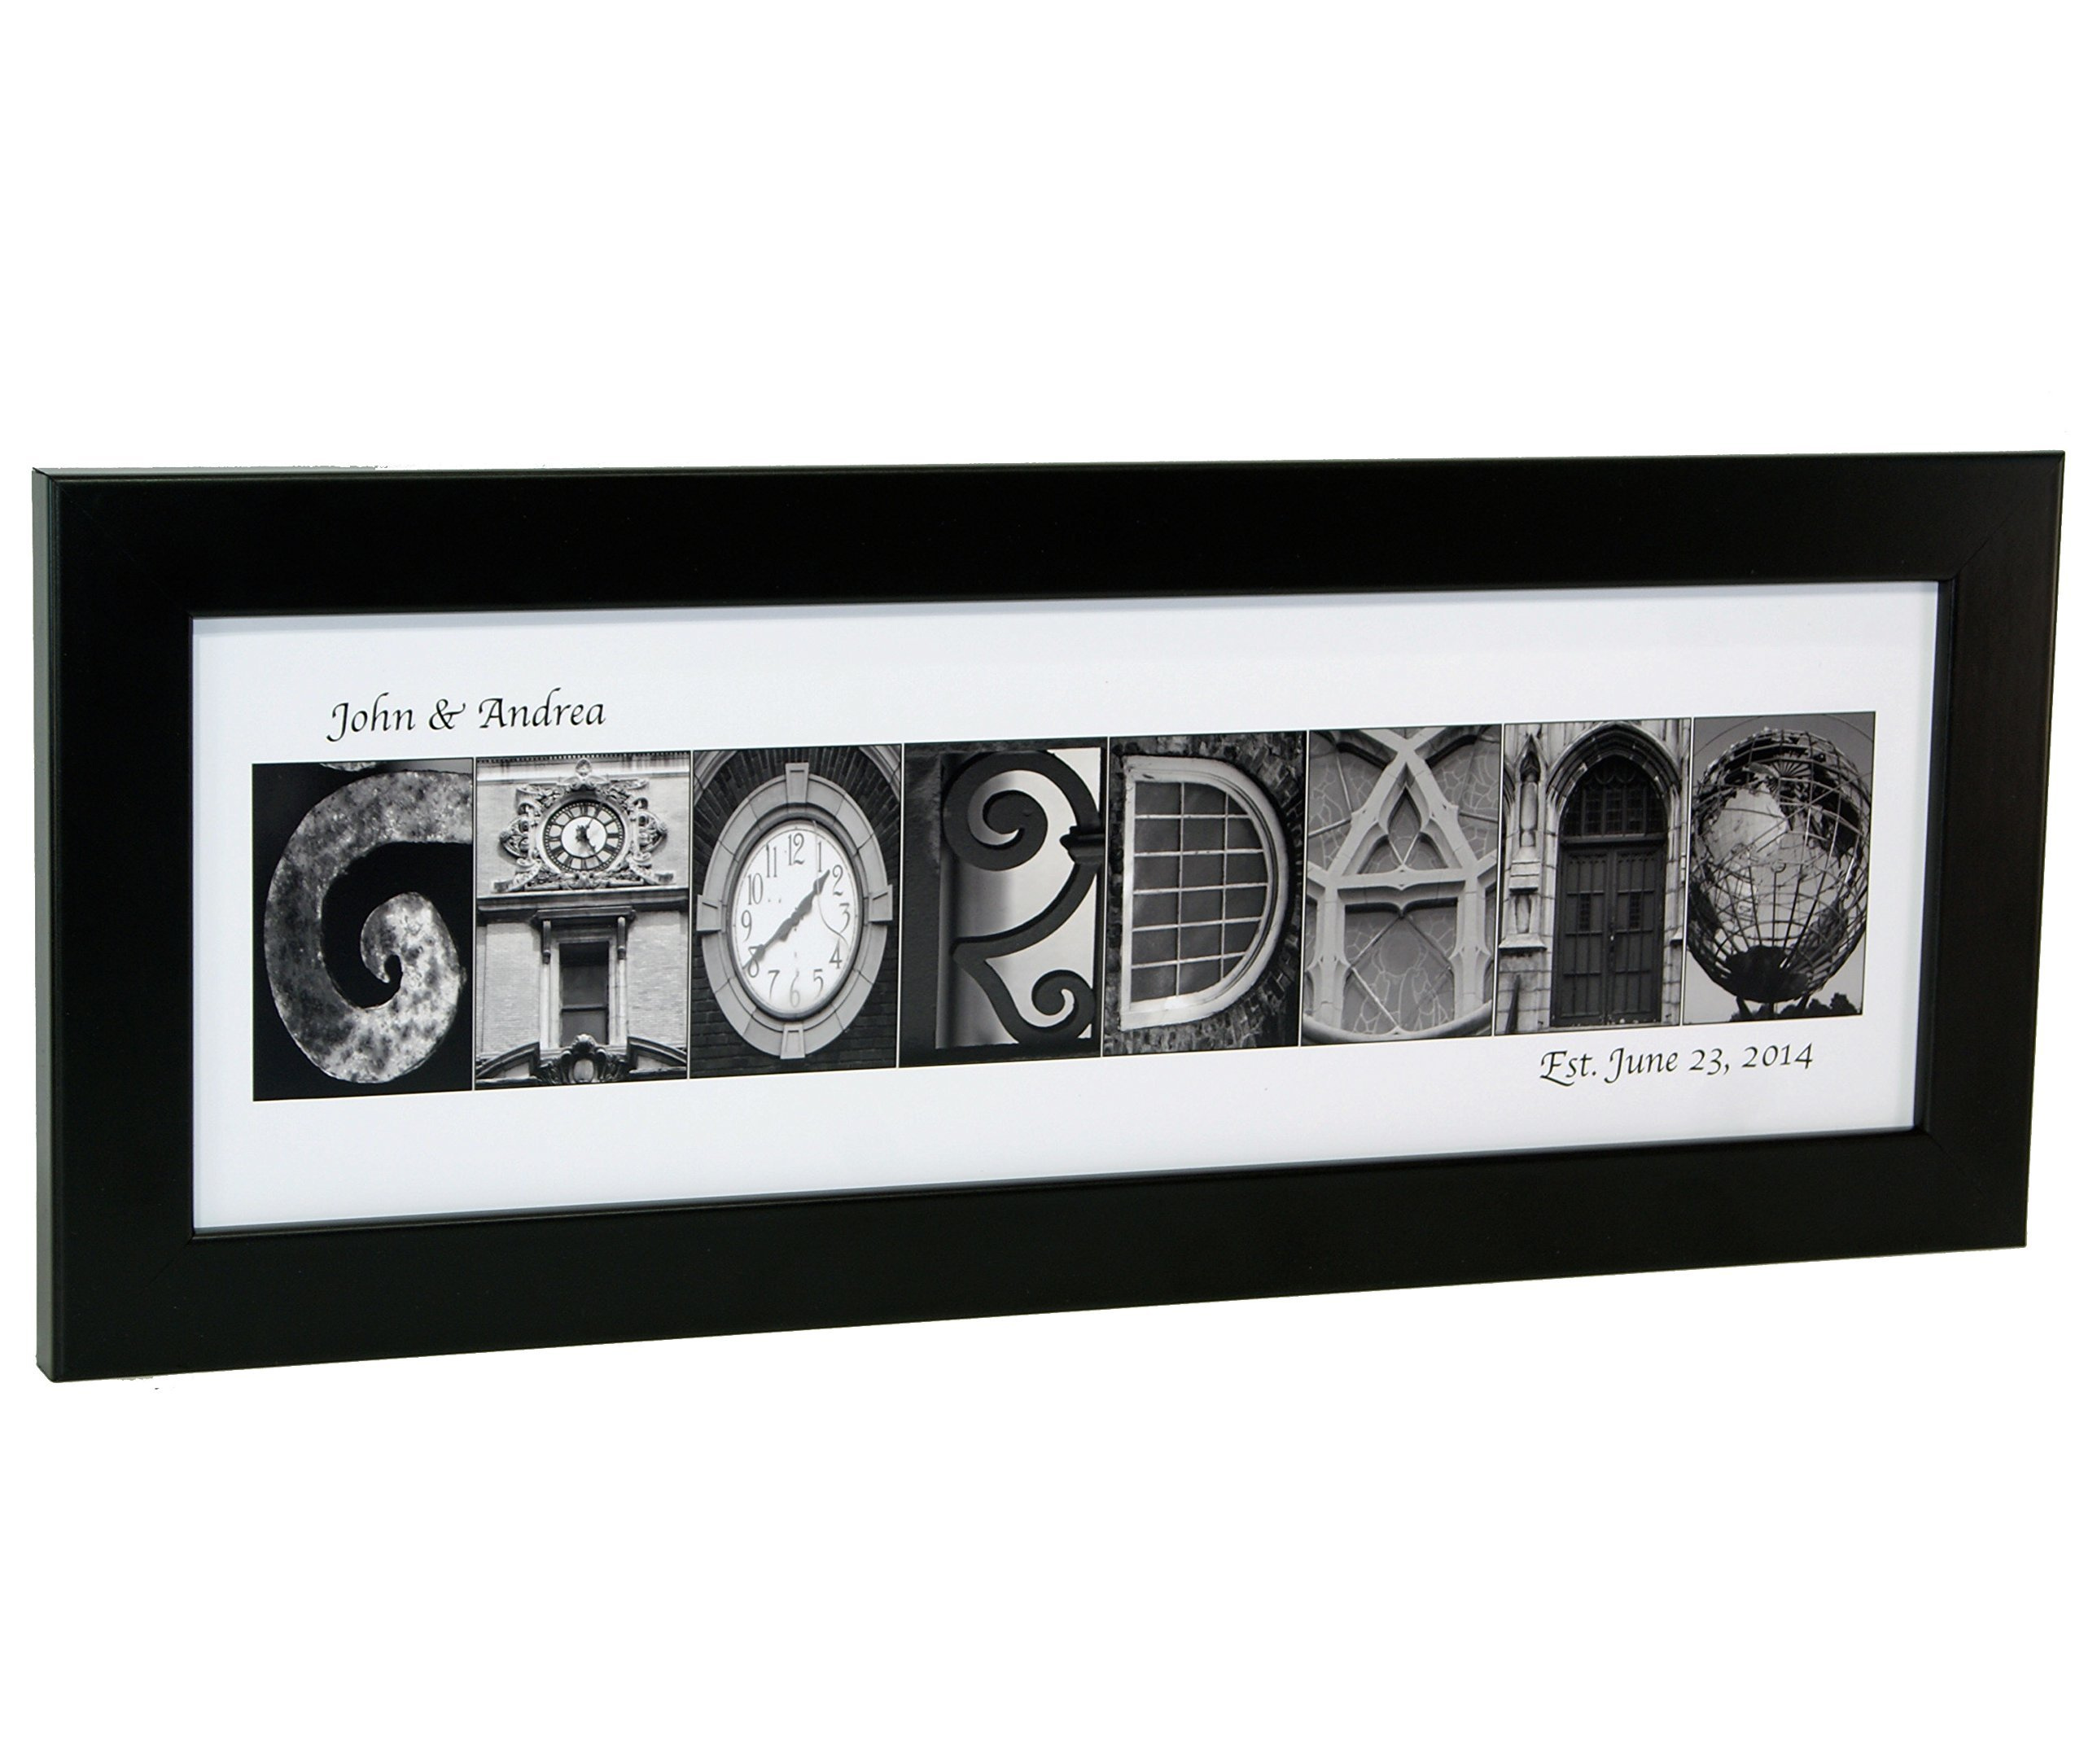 Personalized Name in Black and White Architecture From Original Alphabet Photograph Letters for Personalized Gift, Anniversary, Baby Name (Black Frame) by Creative Letter Art